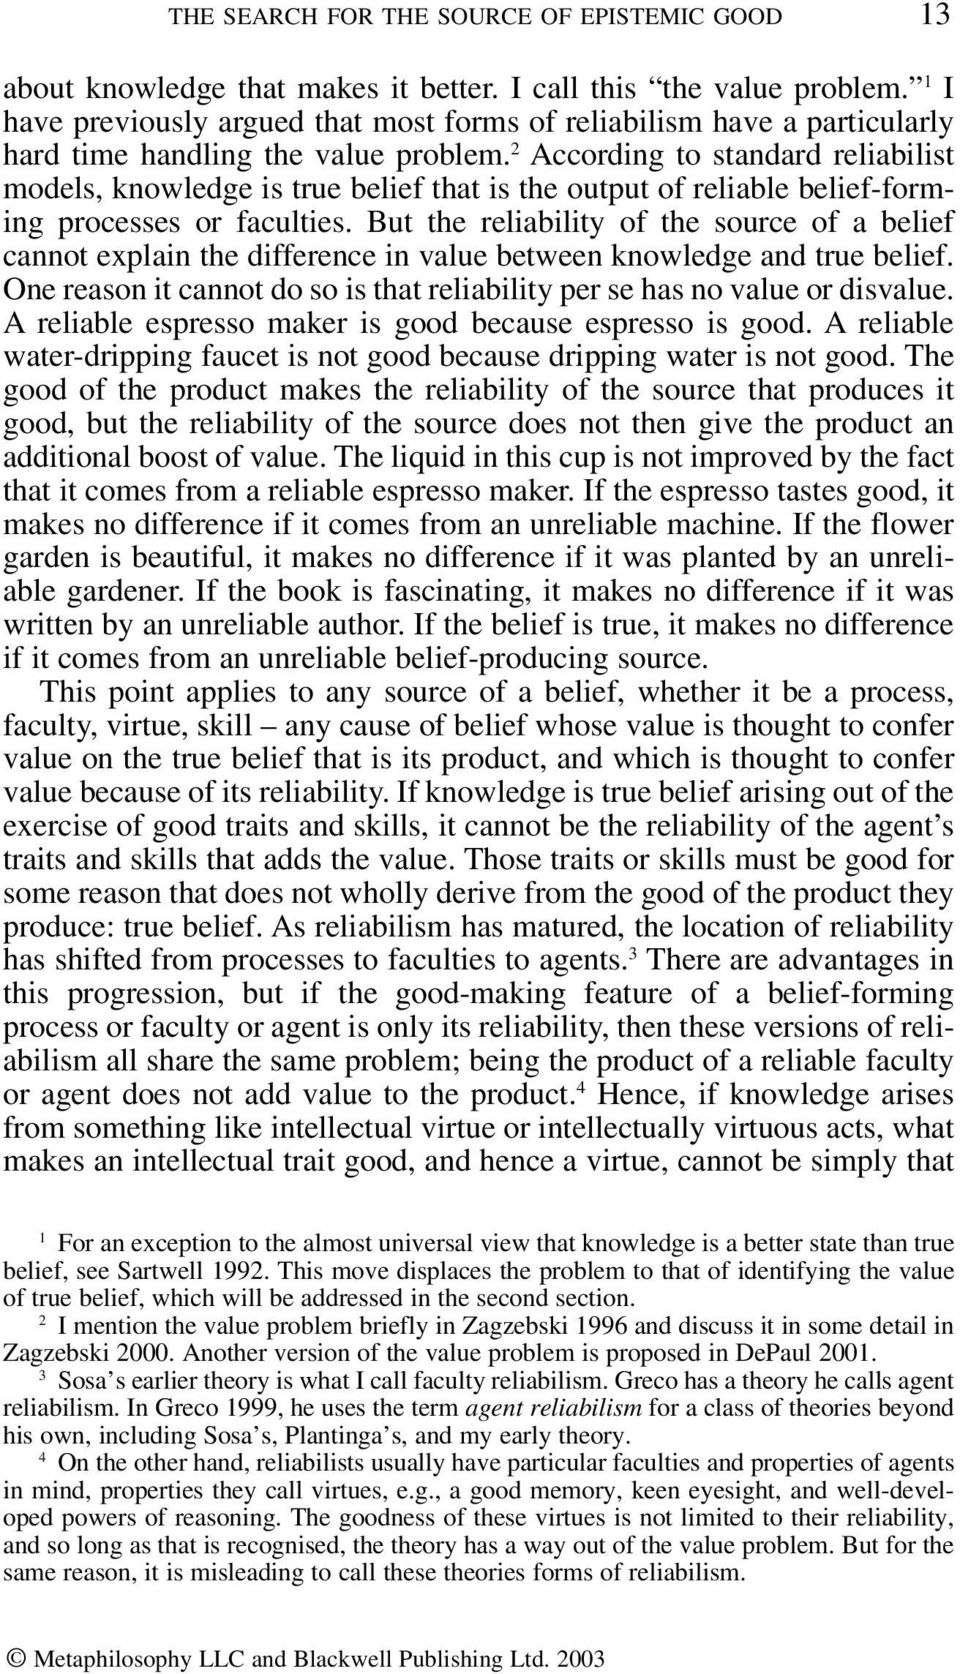 2 According to standard reliabilist models, knowledge is true belief that is the output of reliable belief-forming processes or faculties.